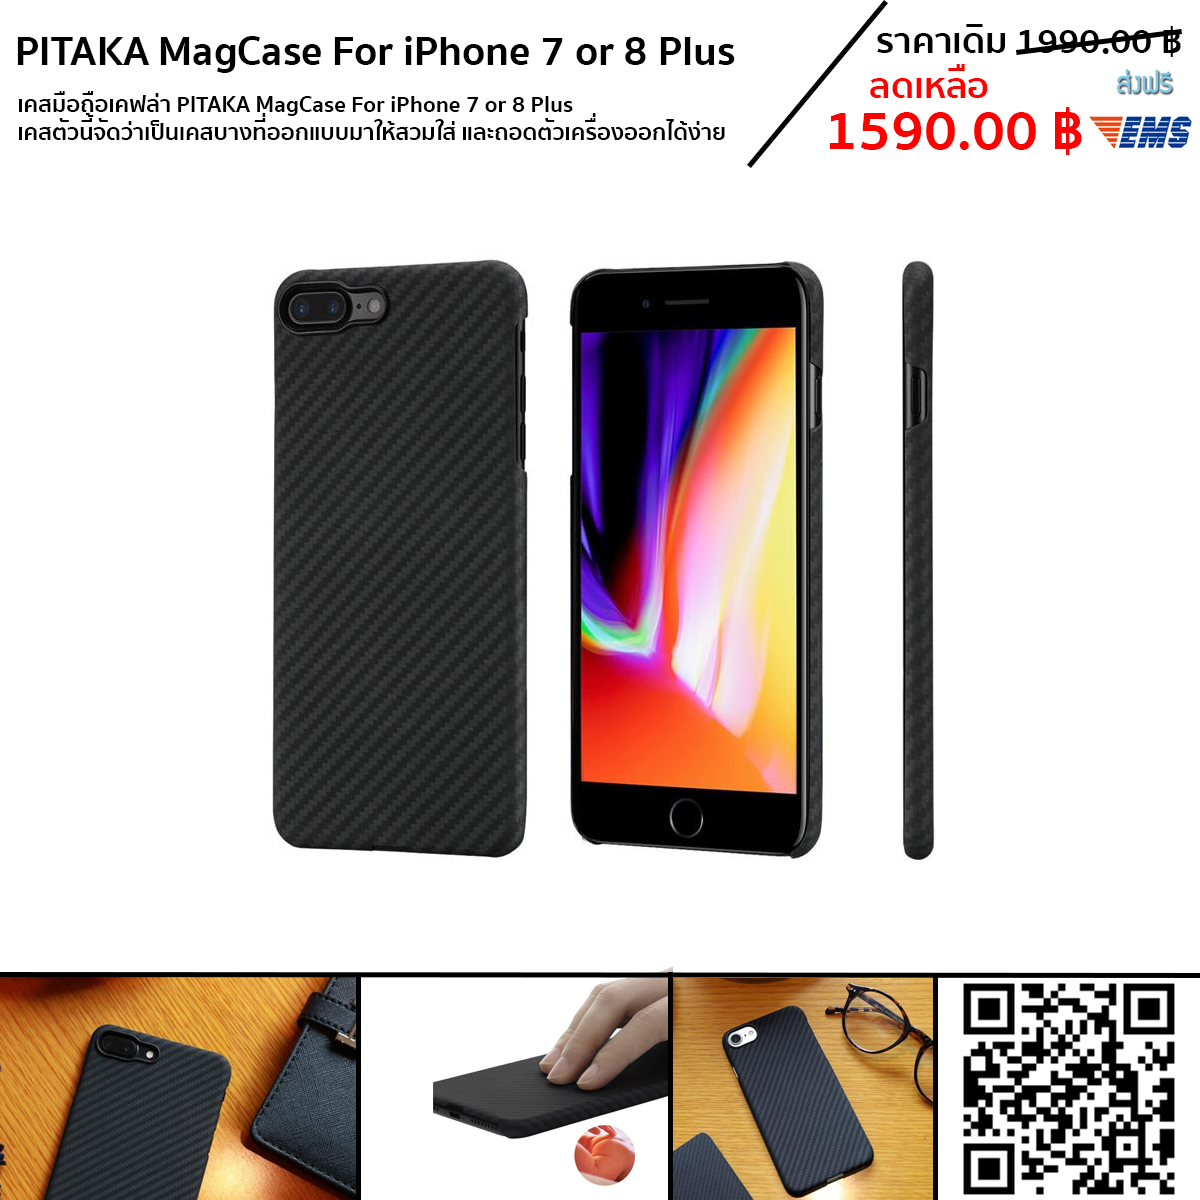 MagCase For iPhone 7 or 8 Plus